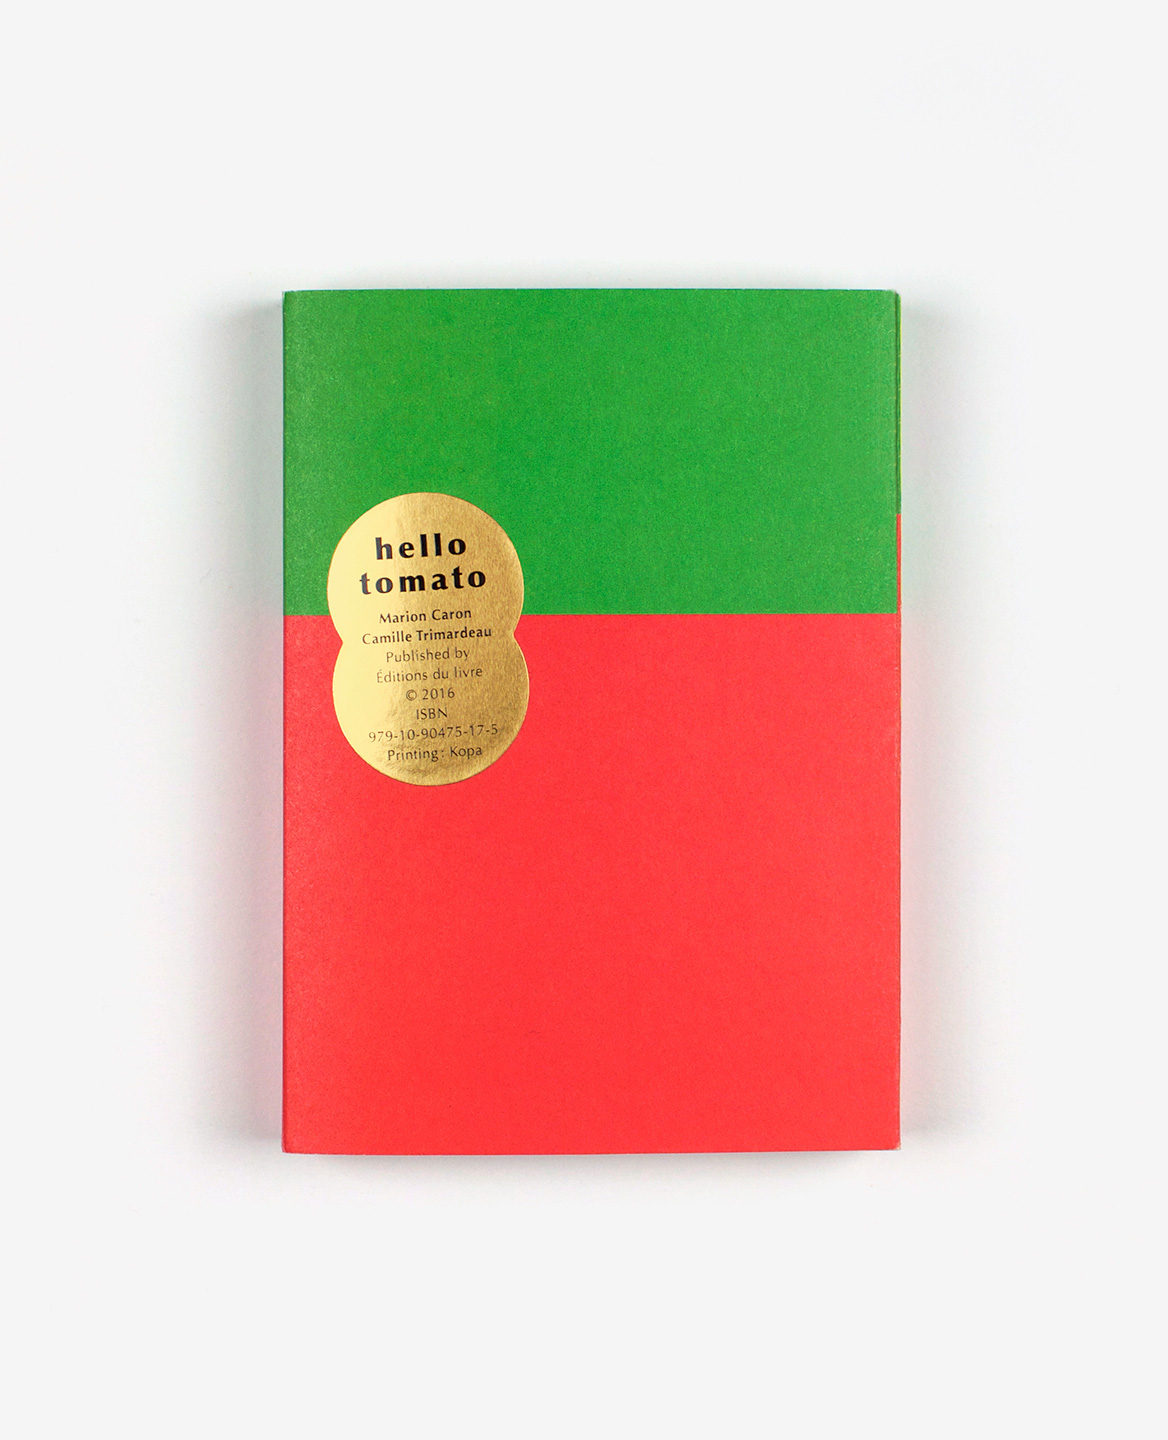 Cover of the book-game Hello tomato